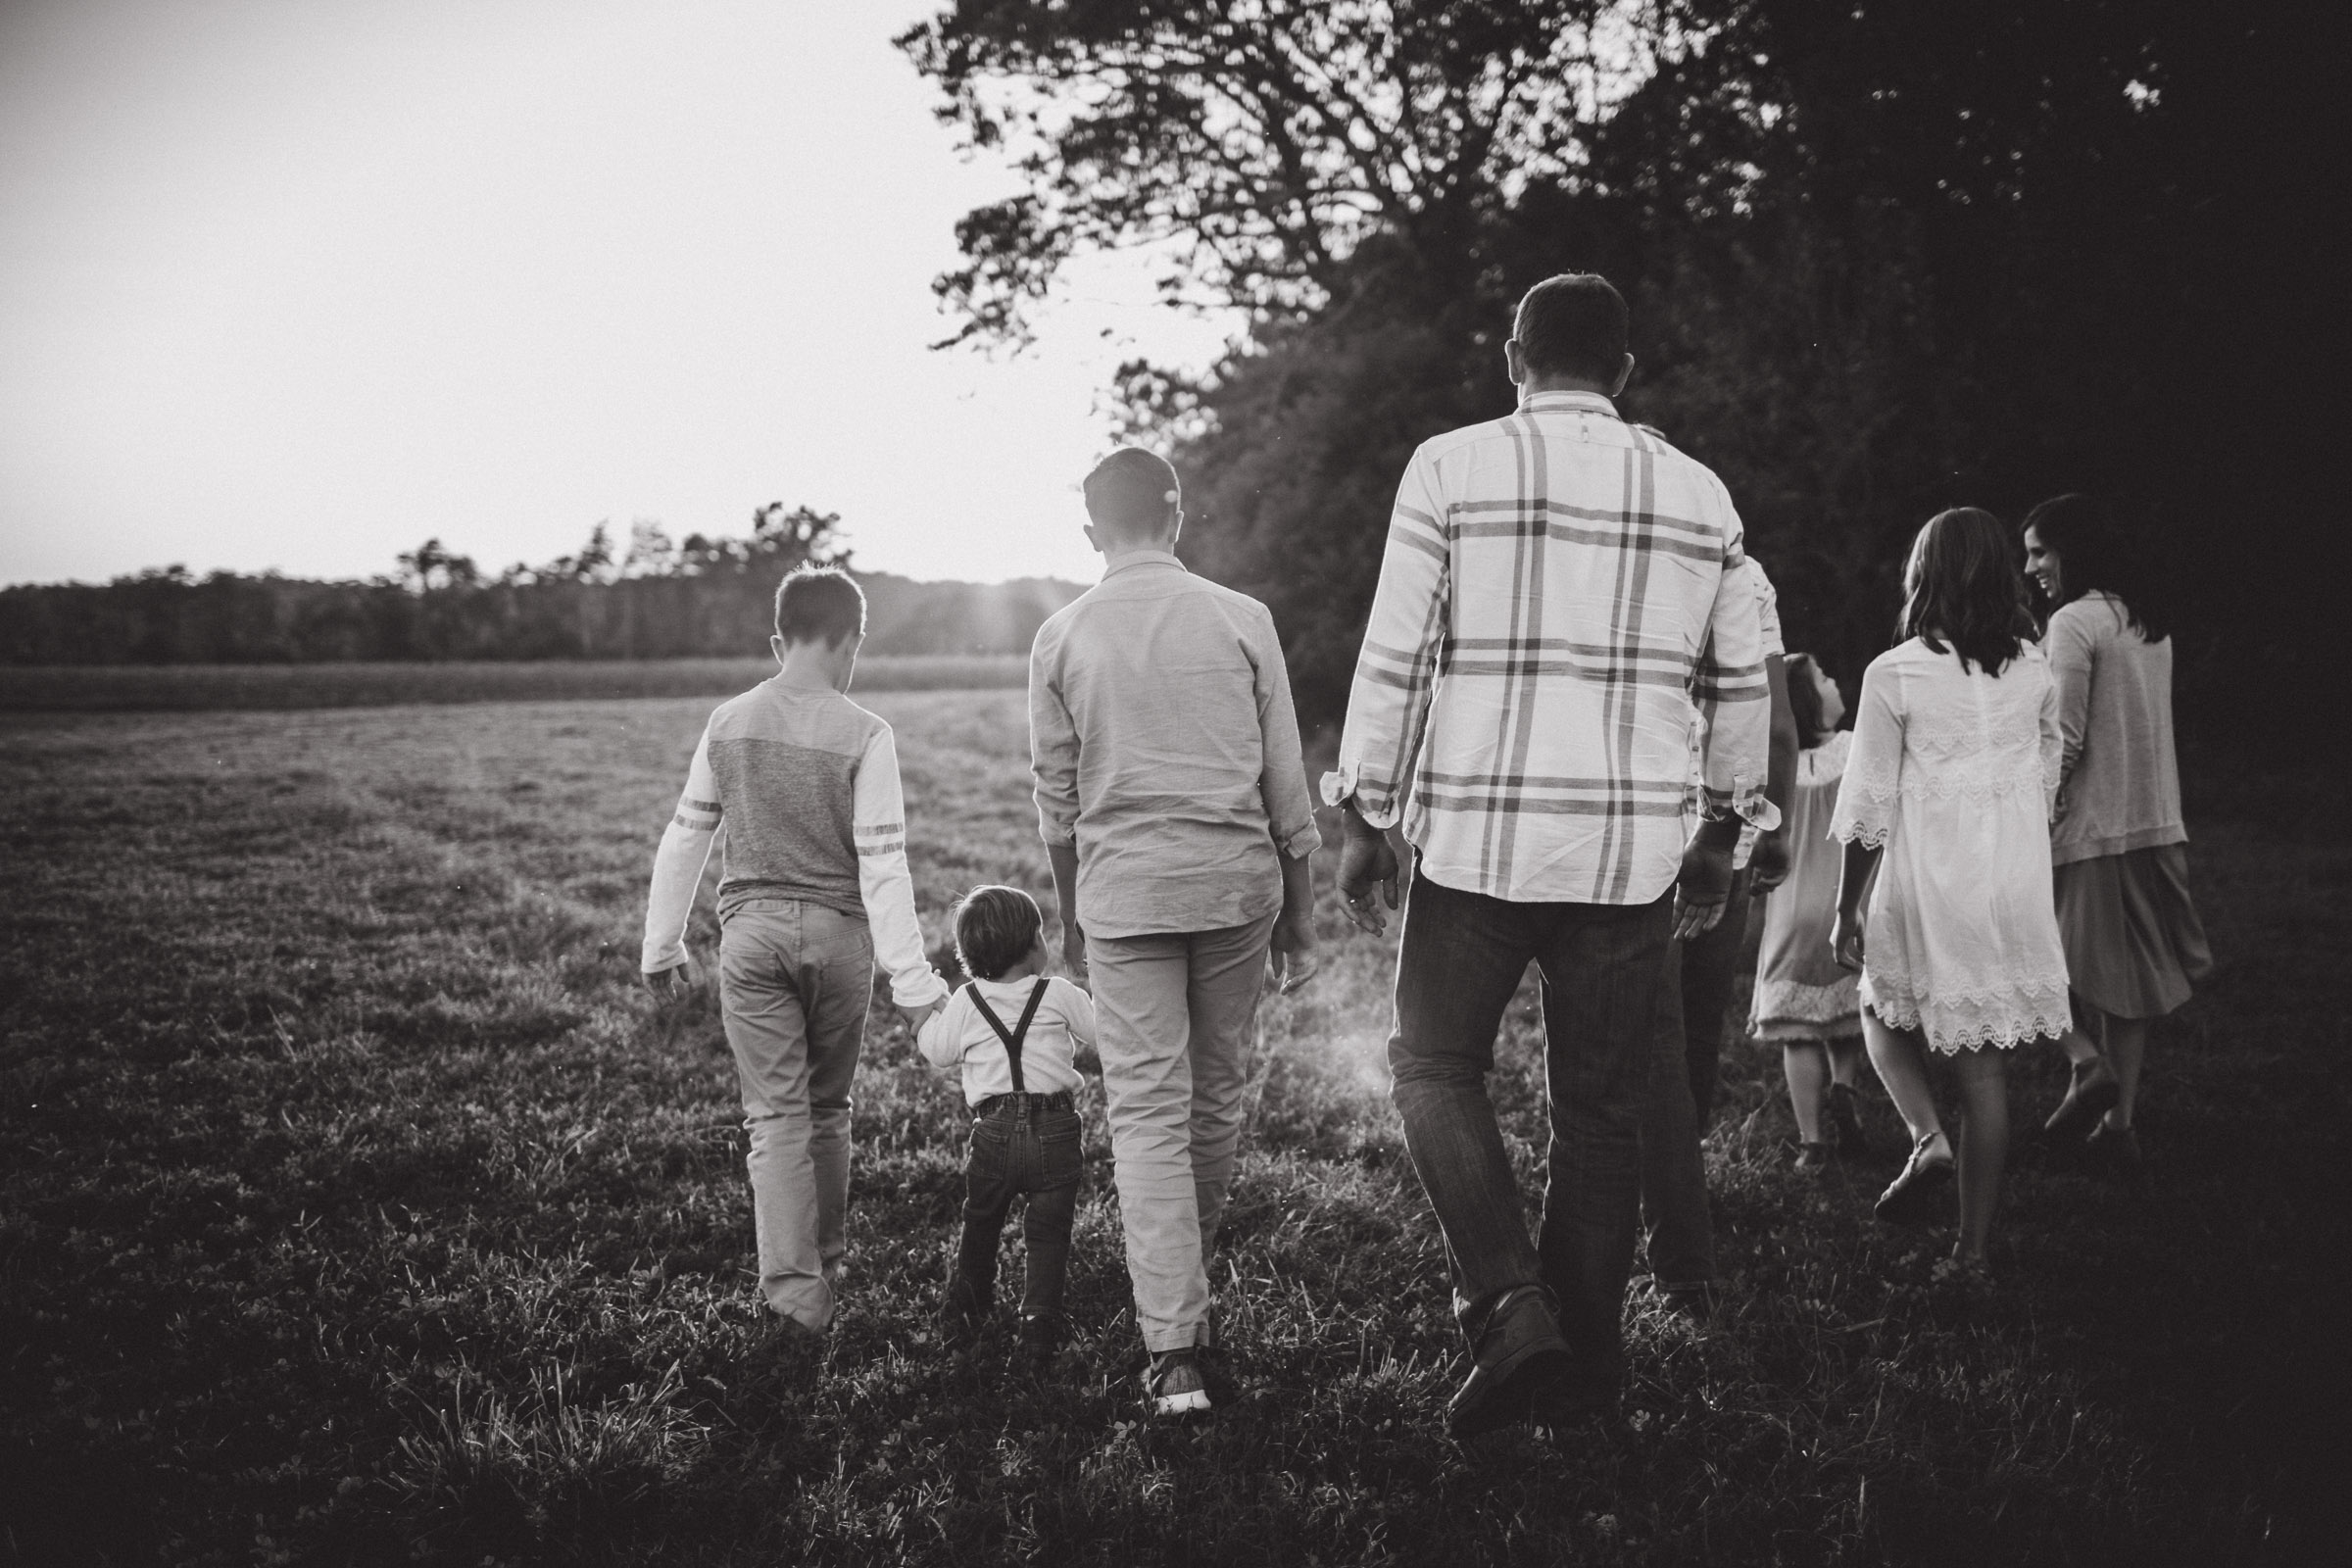 family walking together in field, BW